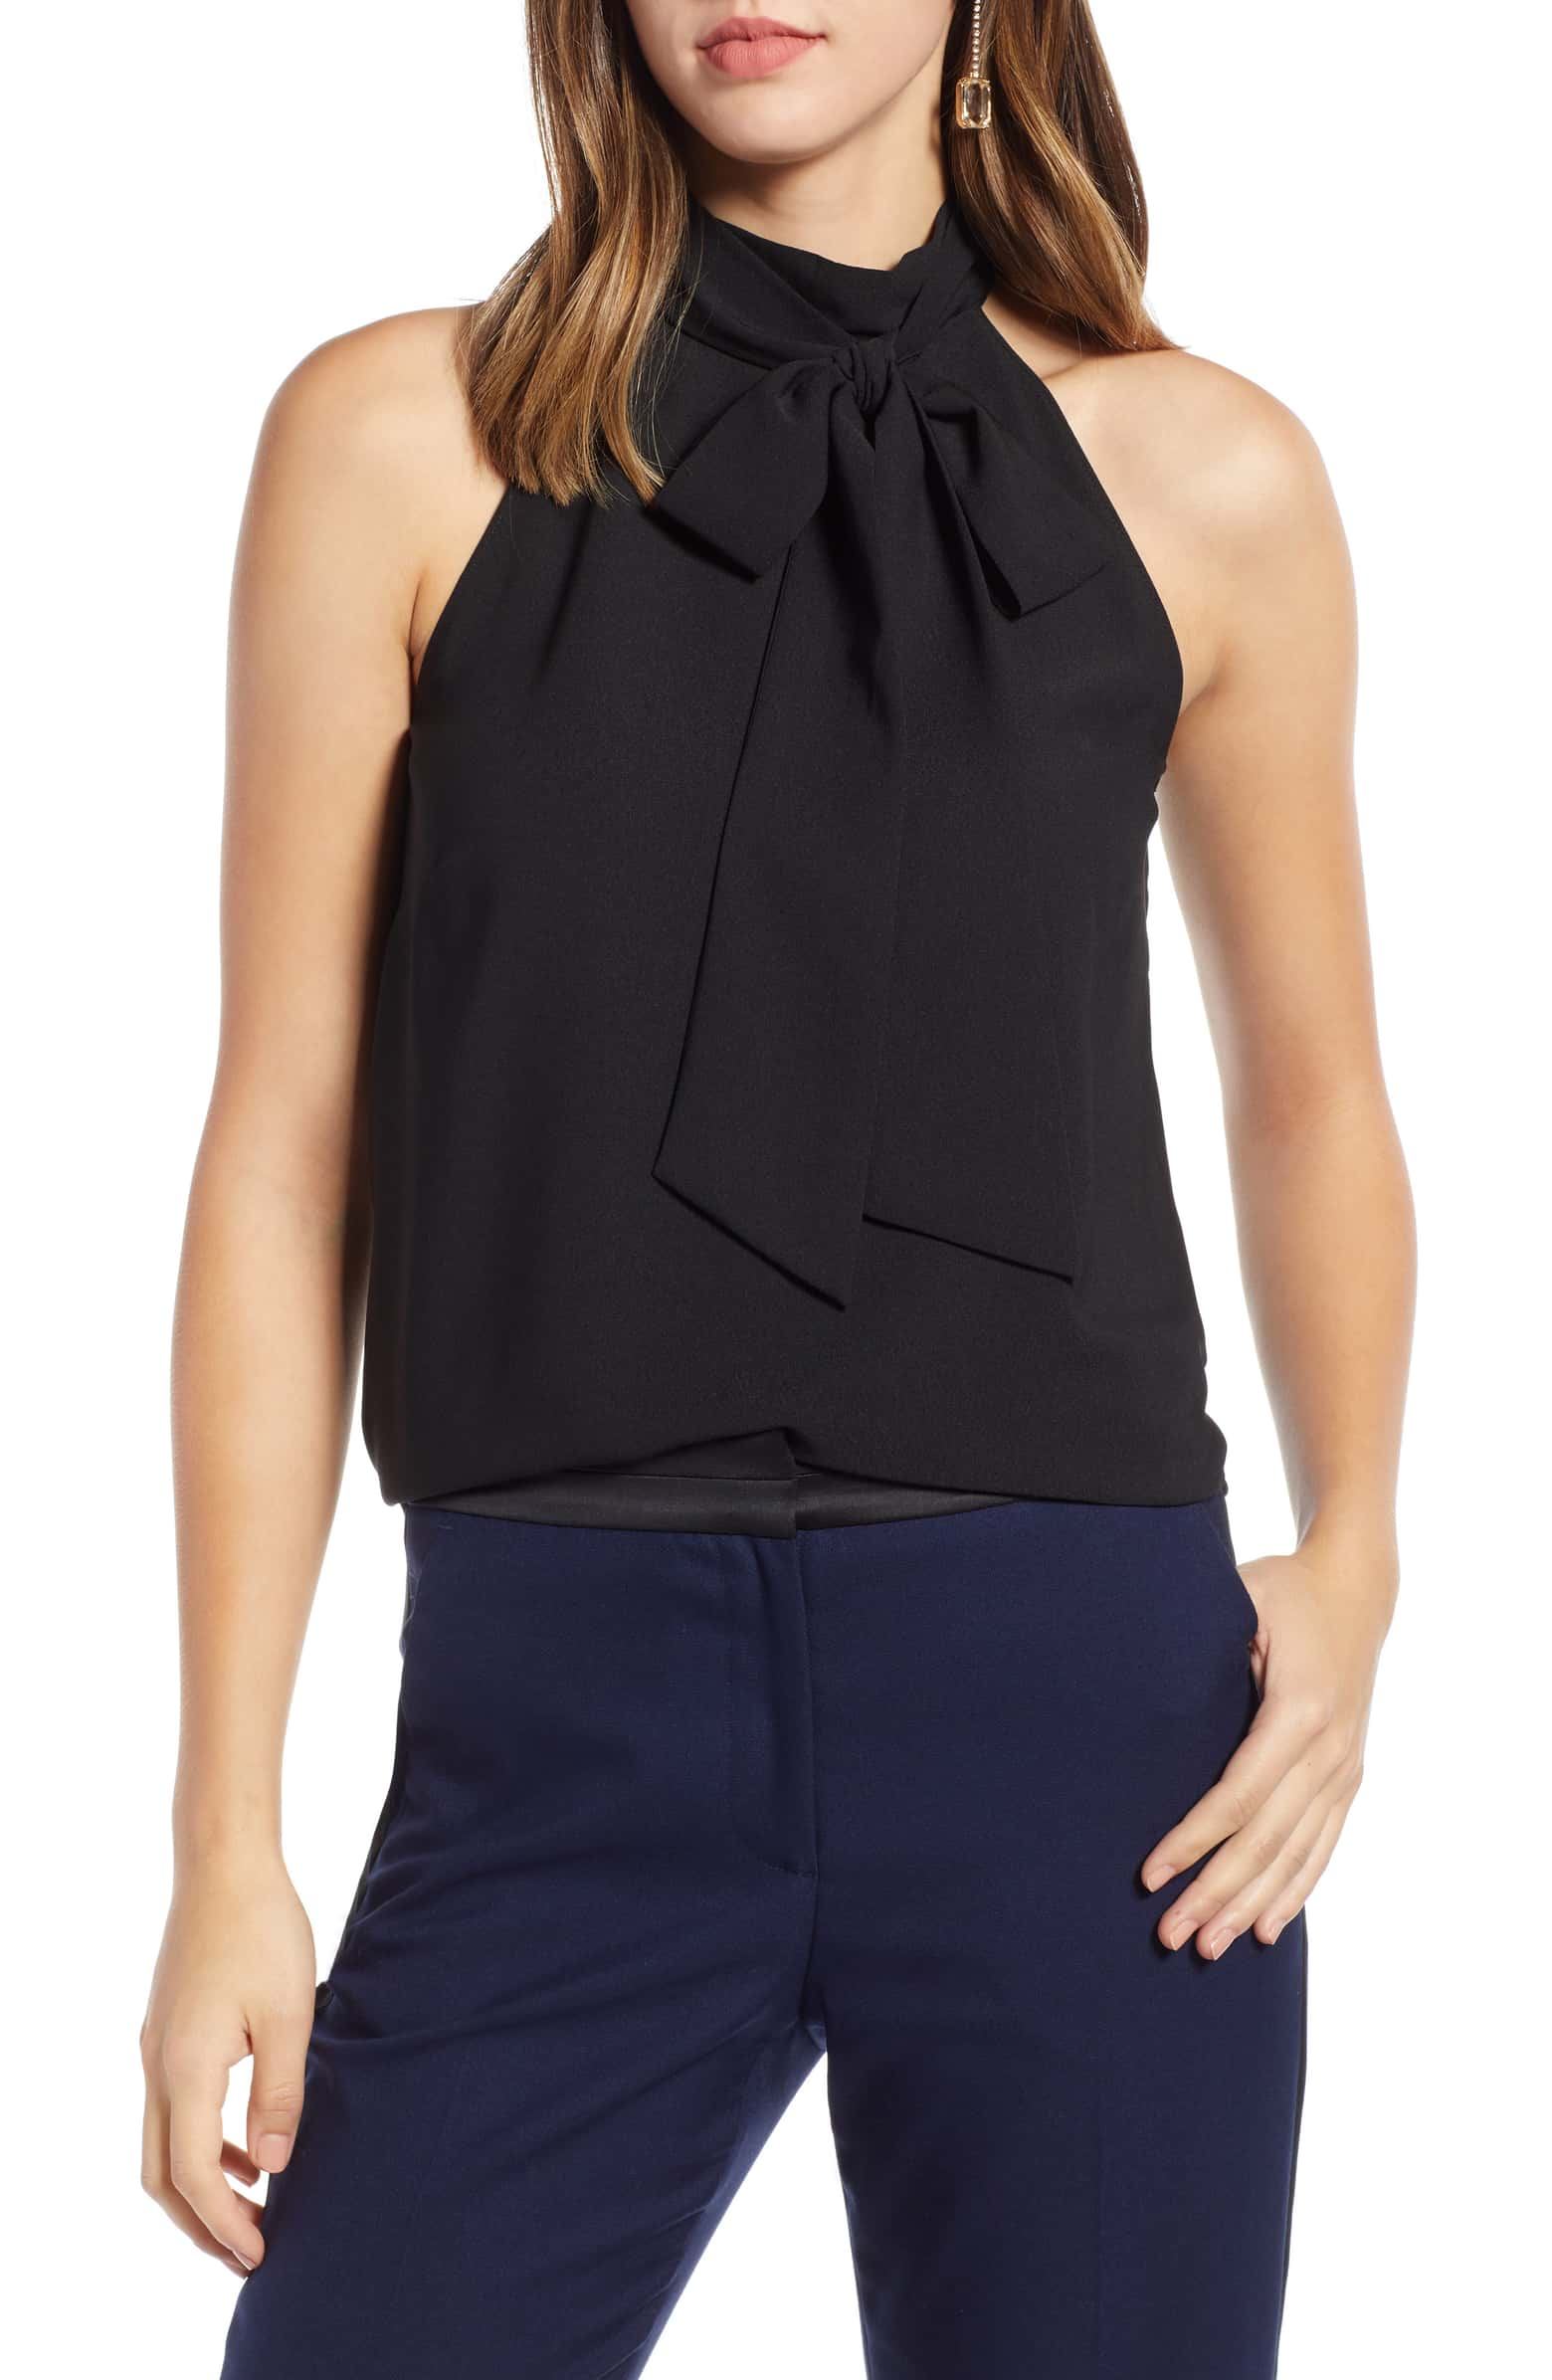 (Brand new -- Sample) Nordstrom 1901 Bow Top, Size Small